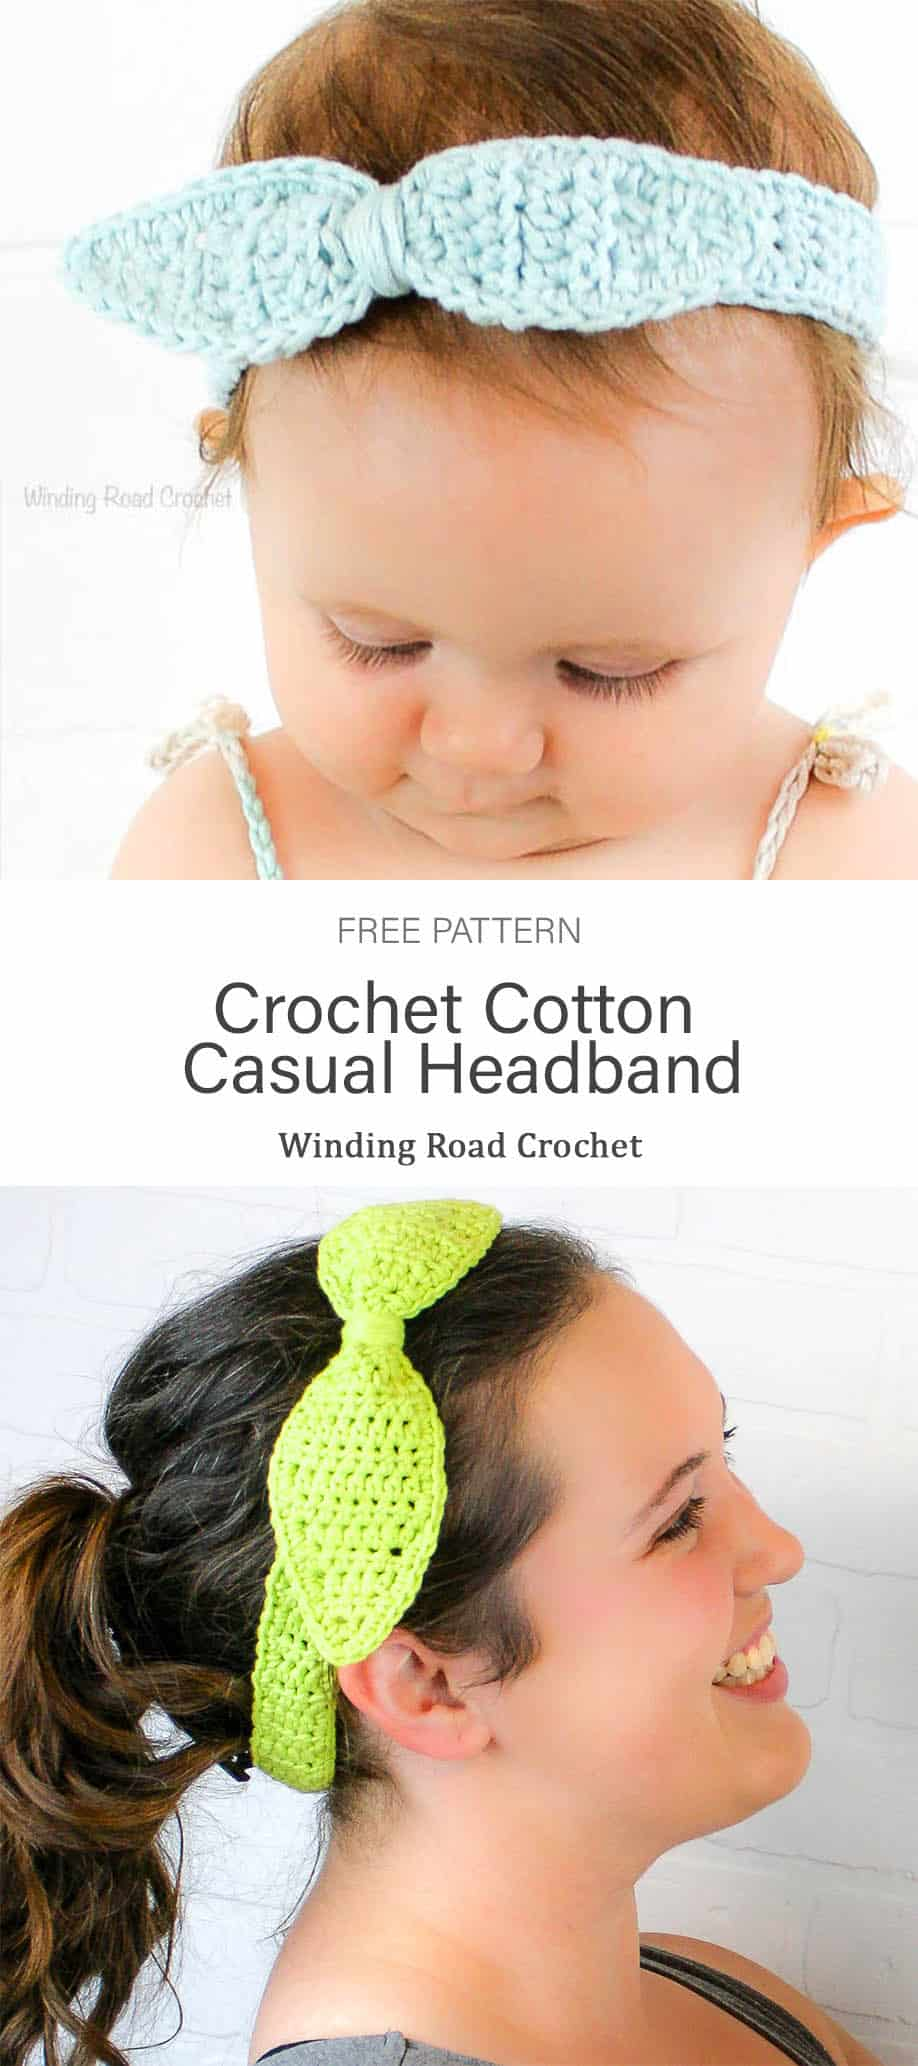 Crochet this quick and easy summer headband. Free crochet pattern by Winding Road Crochet. sizes for babies, kids and women. #crochetforwomen #crochetforbabies #crochetforkids #crochetheadband #freecrochetpattern #cotton #free #freepattern #pattern